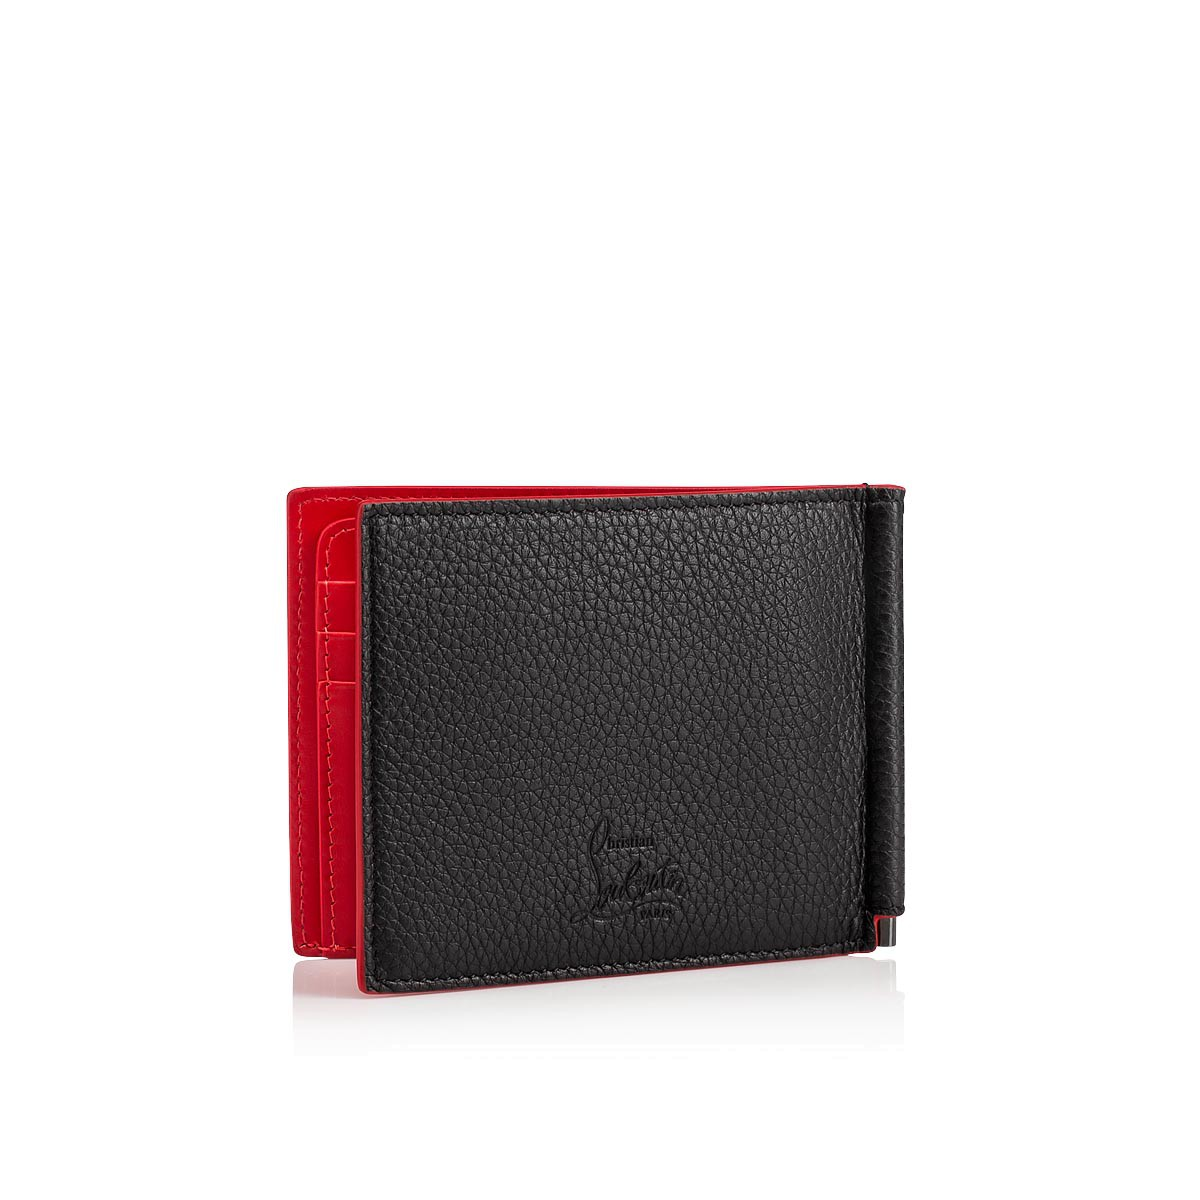 Small Leather Goods - Clipsos Wallet - Christian Louboutin